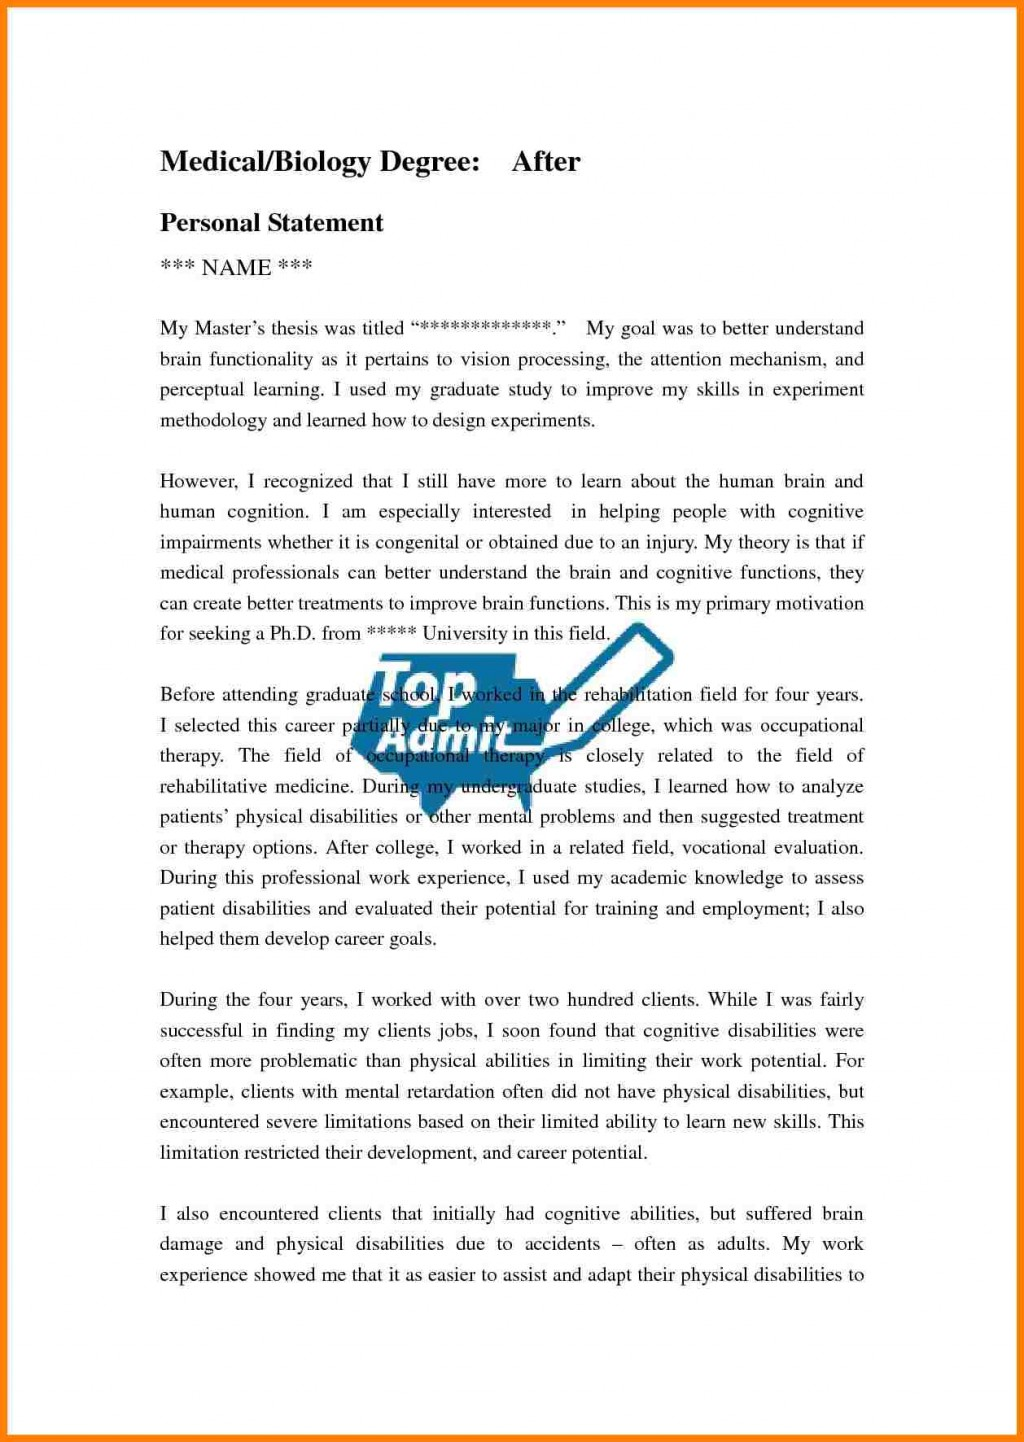 011 Essay Example Teen Essays On Football Basketball Baseball Track And Personal Goals For Graduate School L Exceptional My Favorite Game In Marathi Related Discursive Topics Hindi Wikipedia Large